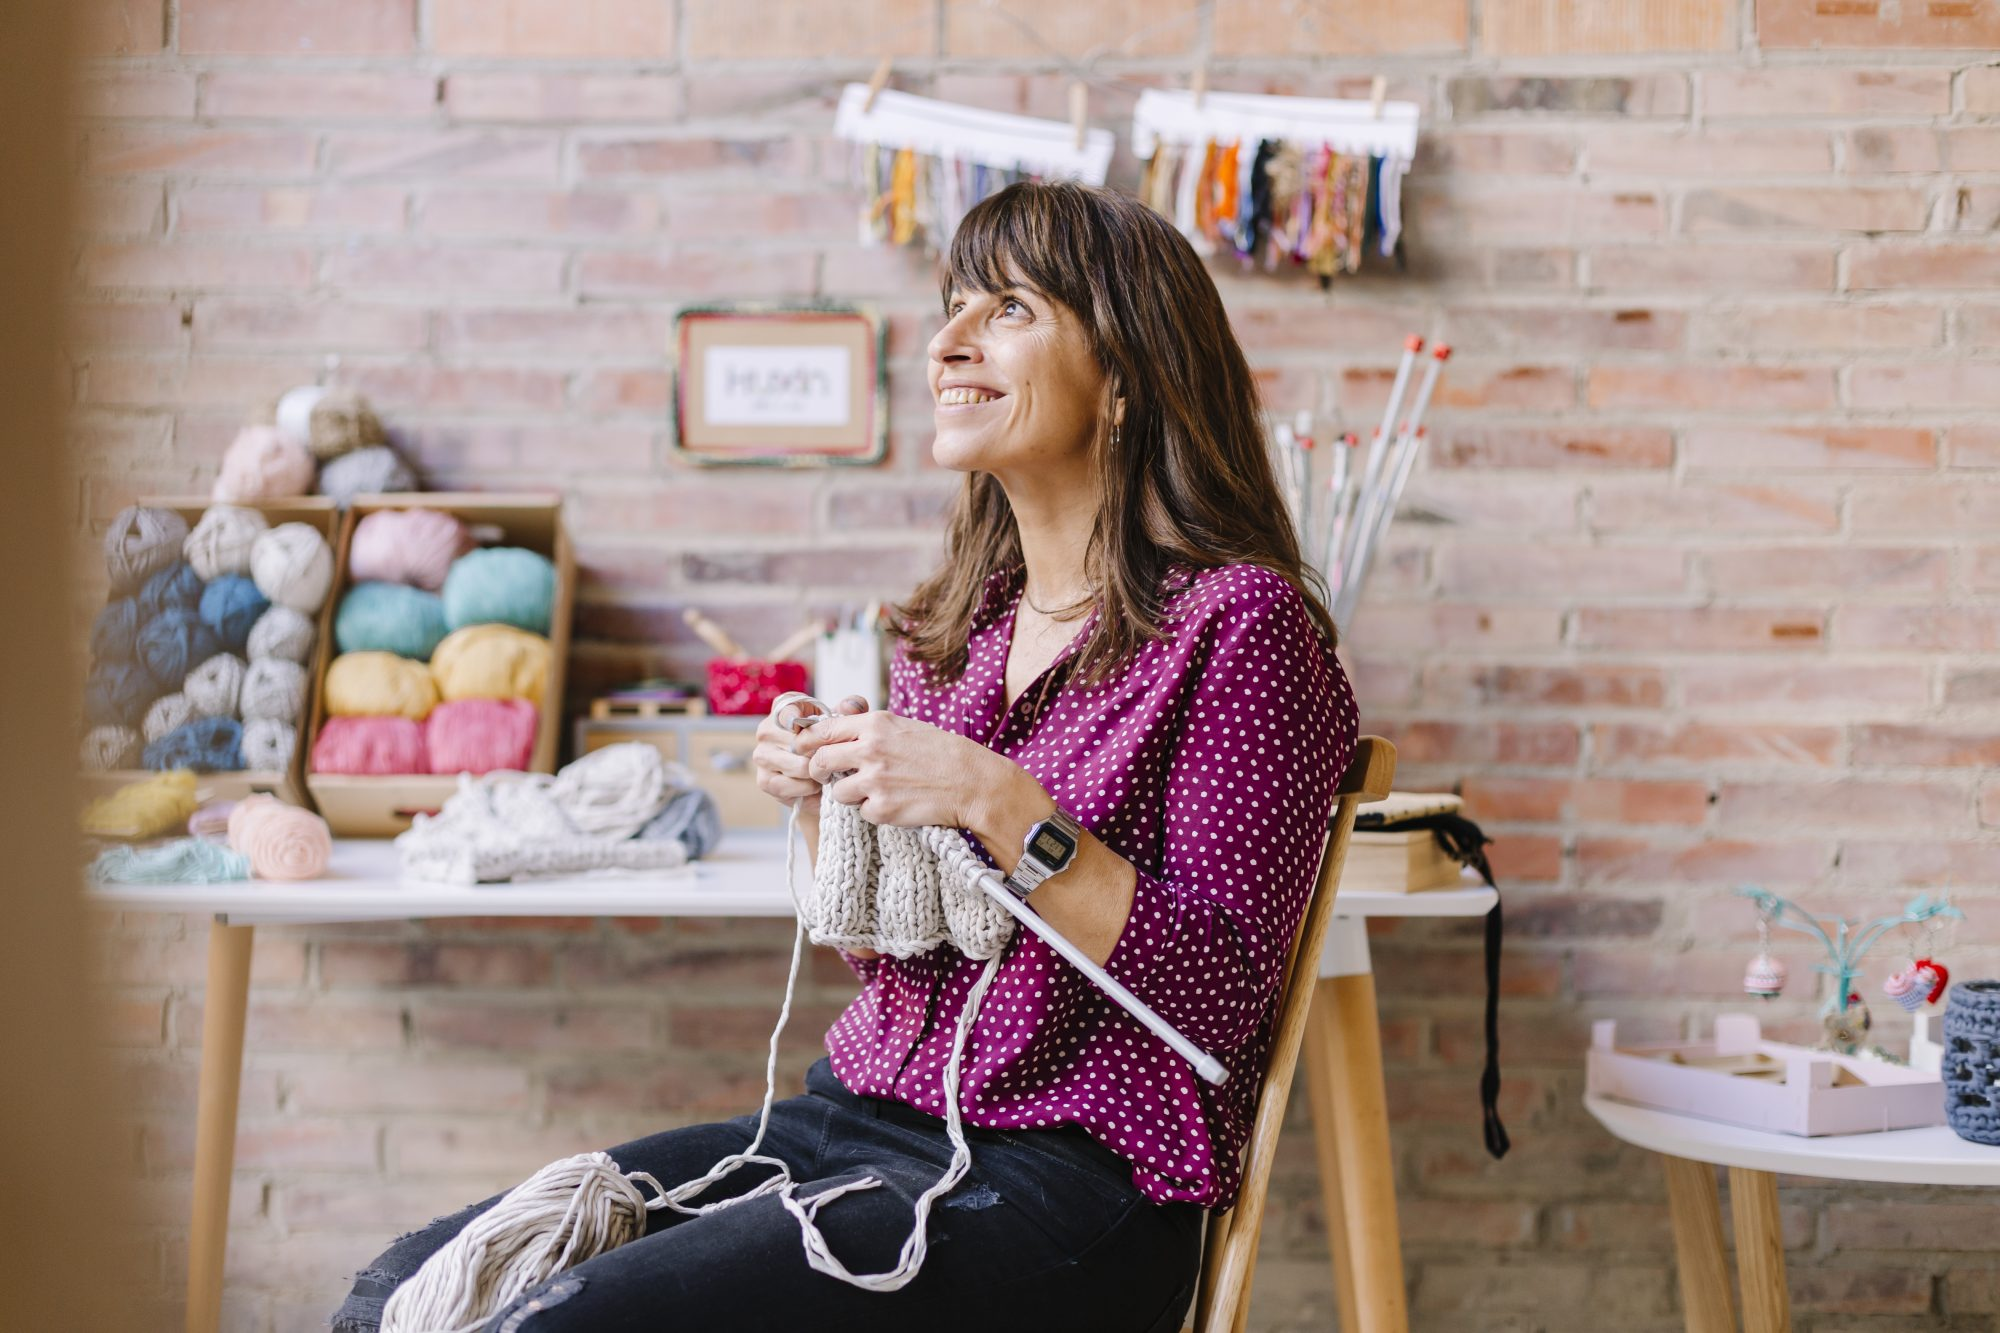 smiling woman sitting on chair knitting